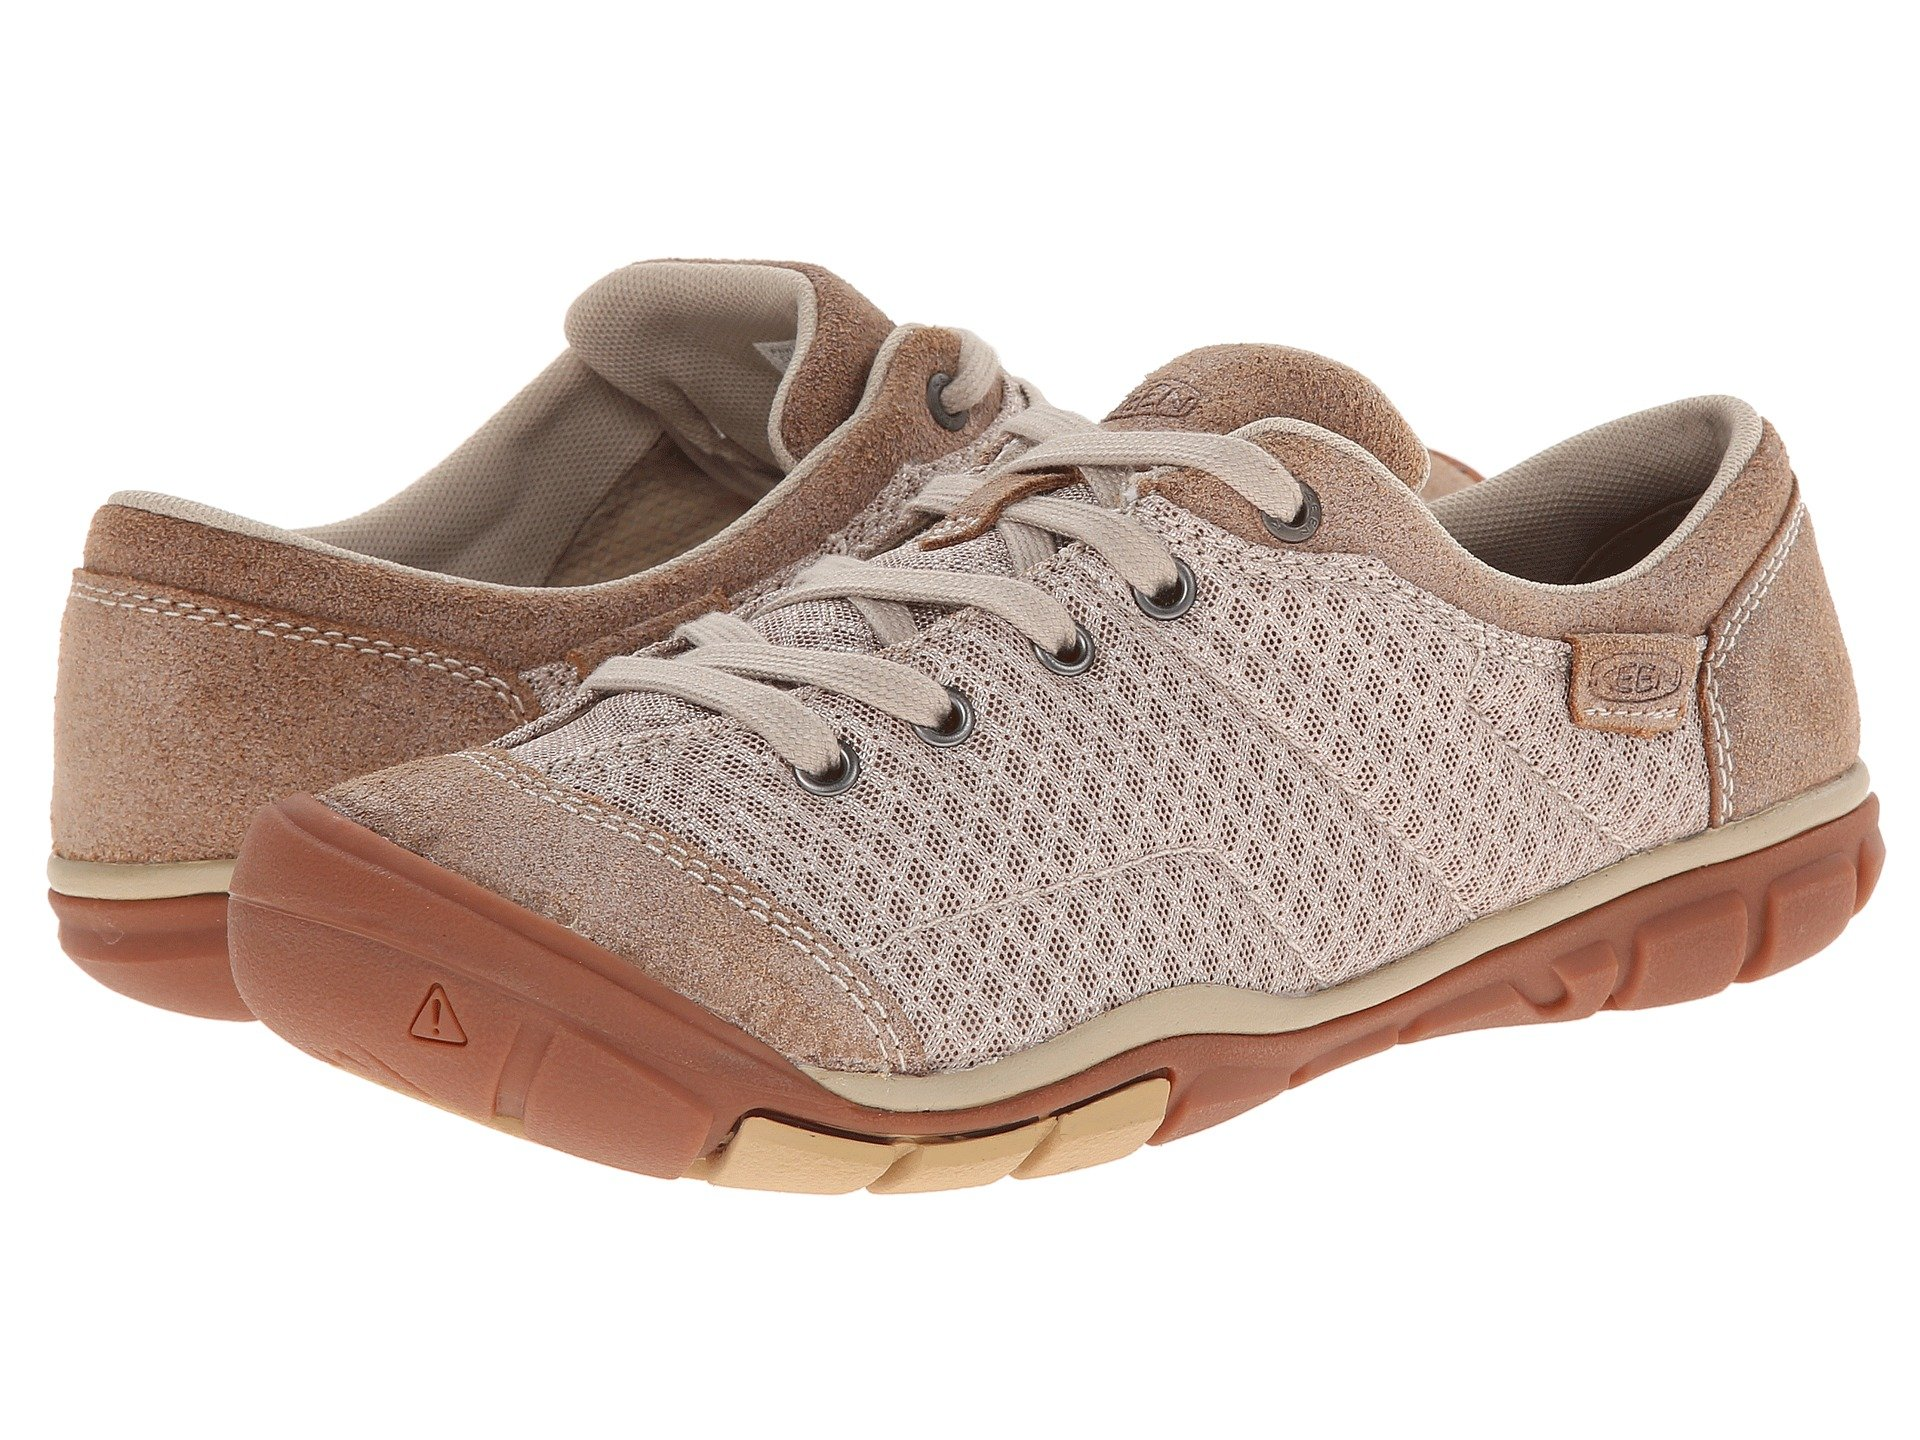 Keen Mercer Lace Ii Cnx Outdoor Shoes